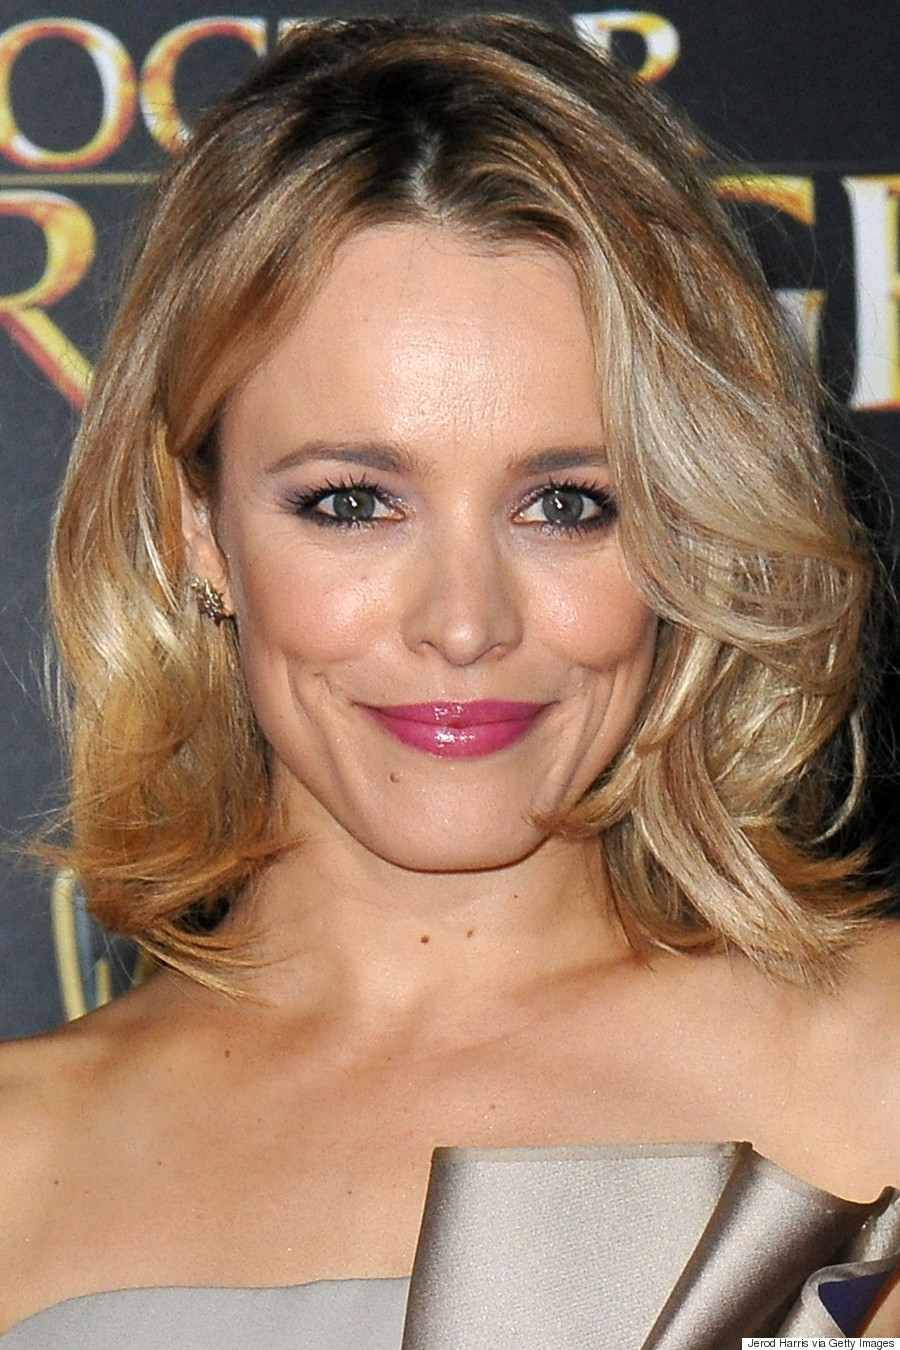 Best Dressed Of The Week: Rachel McAdams Steals The Show ... Rachel Mcadams